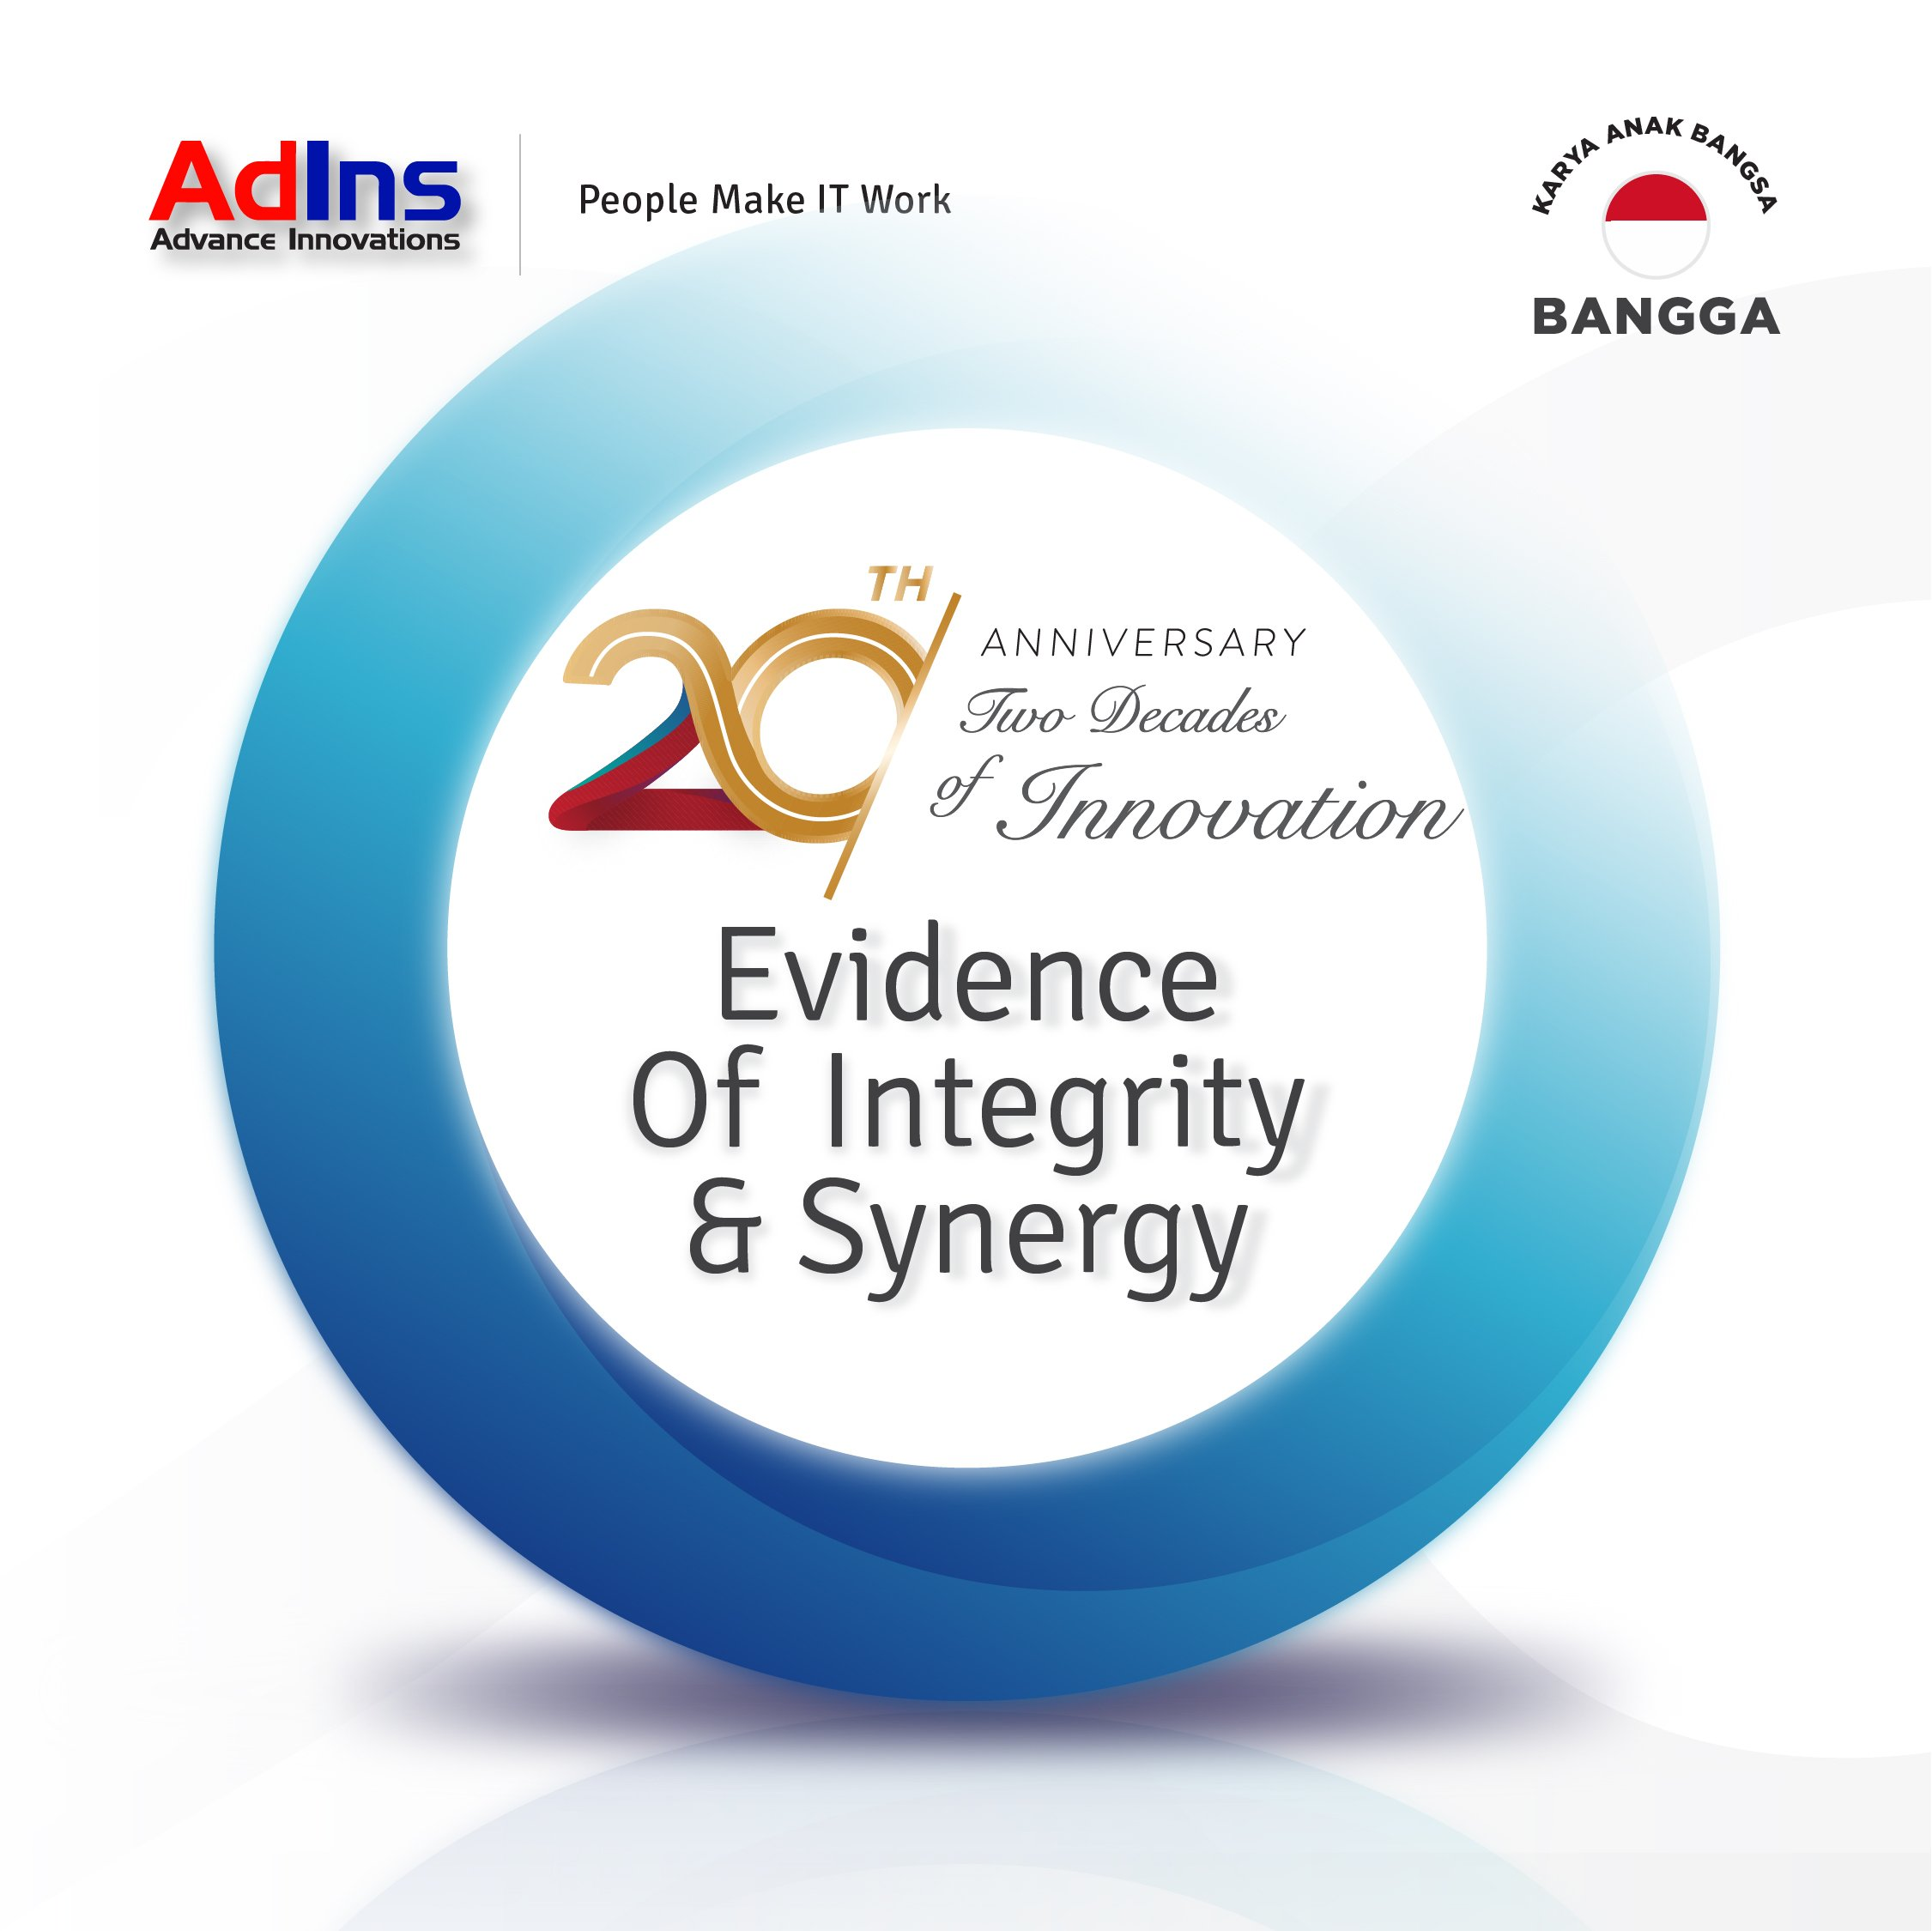 Innovation Beyond Two Decades – AdIns 20th Anniversary